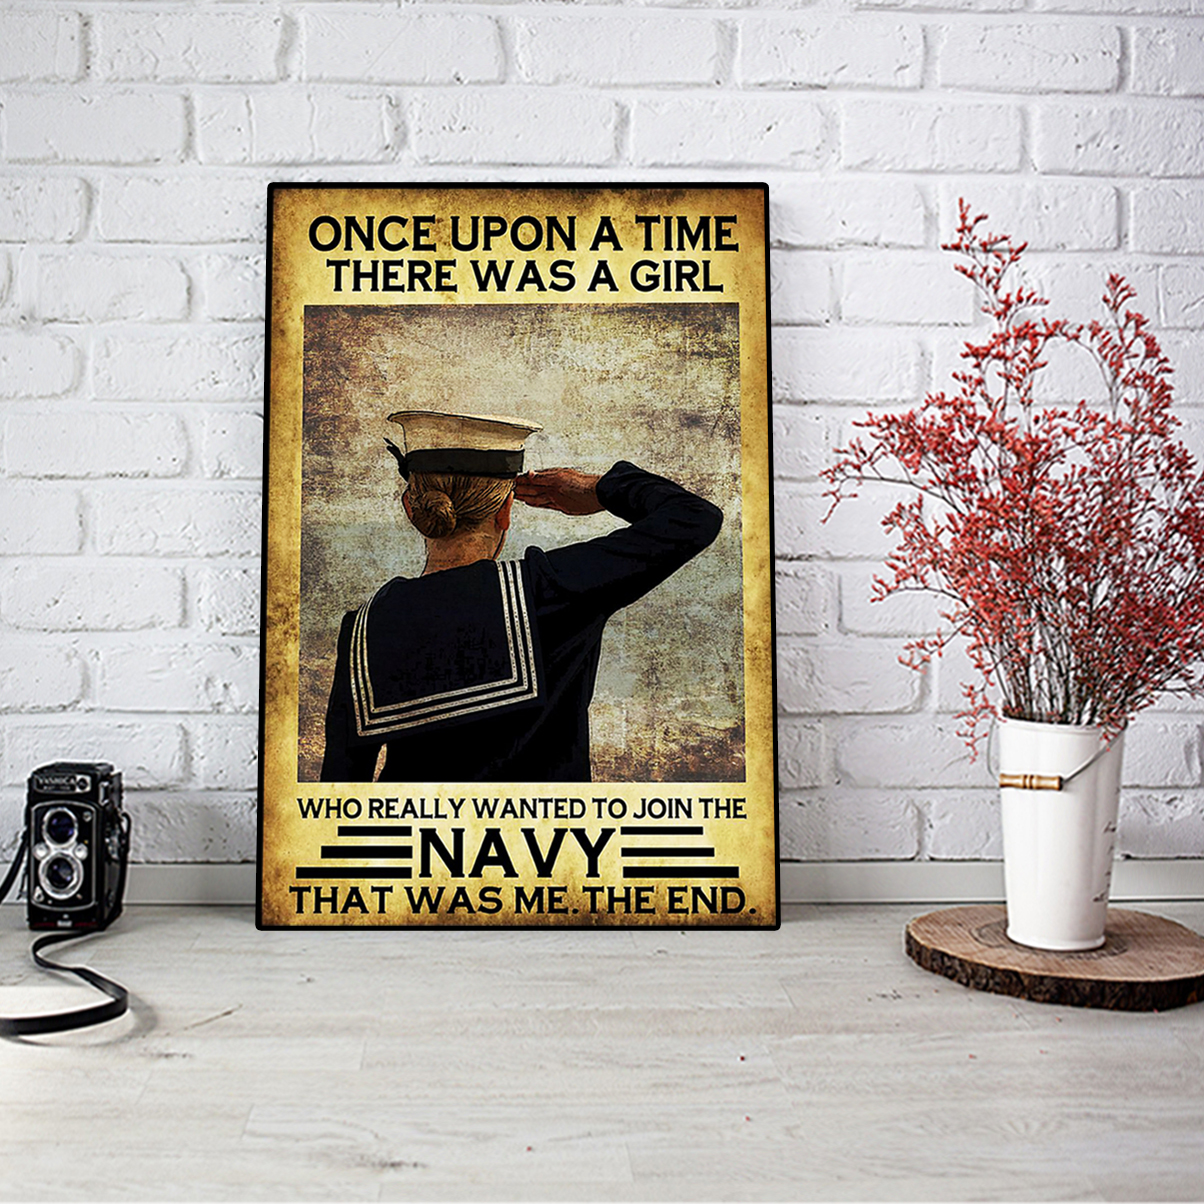 Once upon a time there was a girl who really wanted to join the navy poster A2